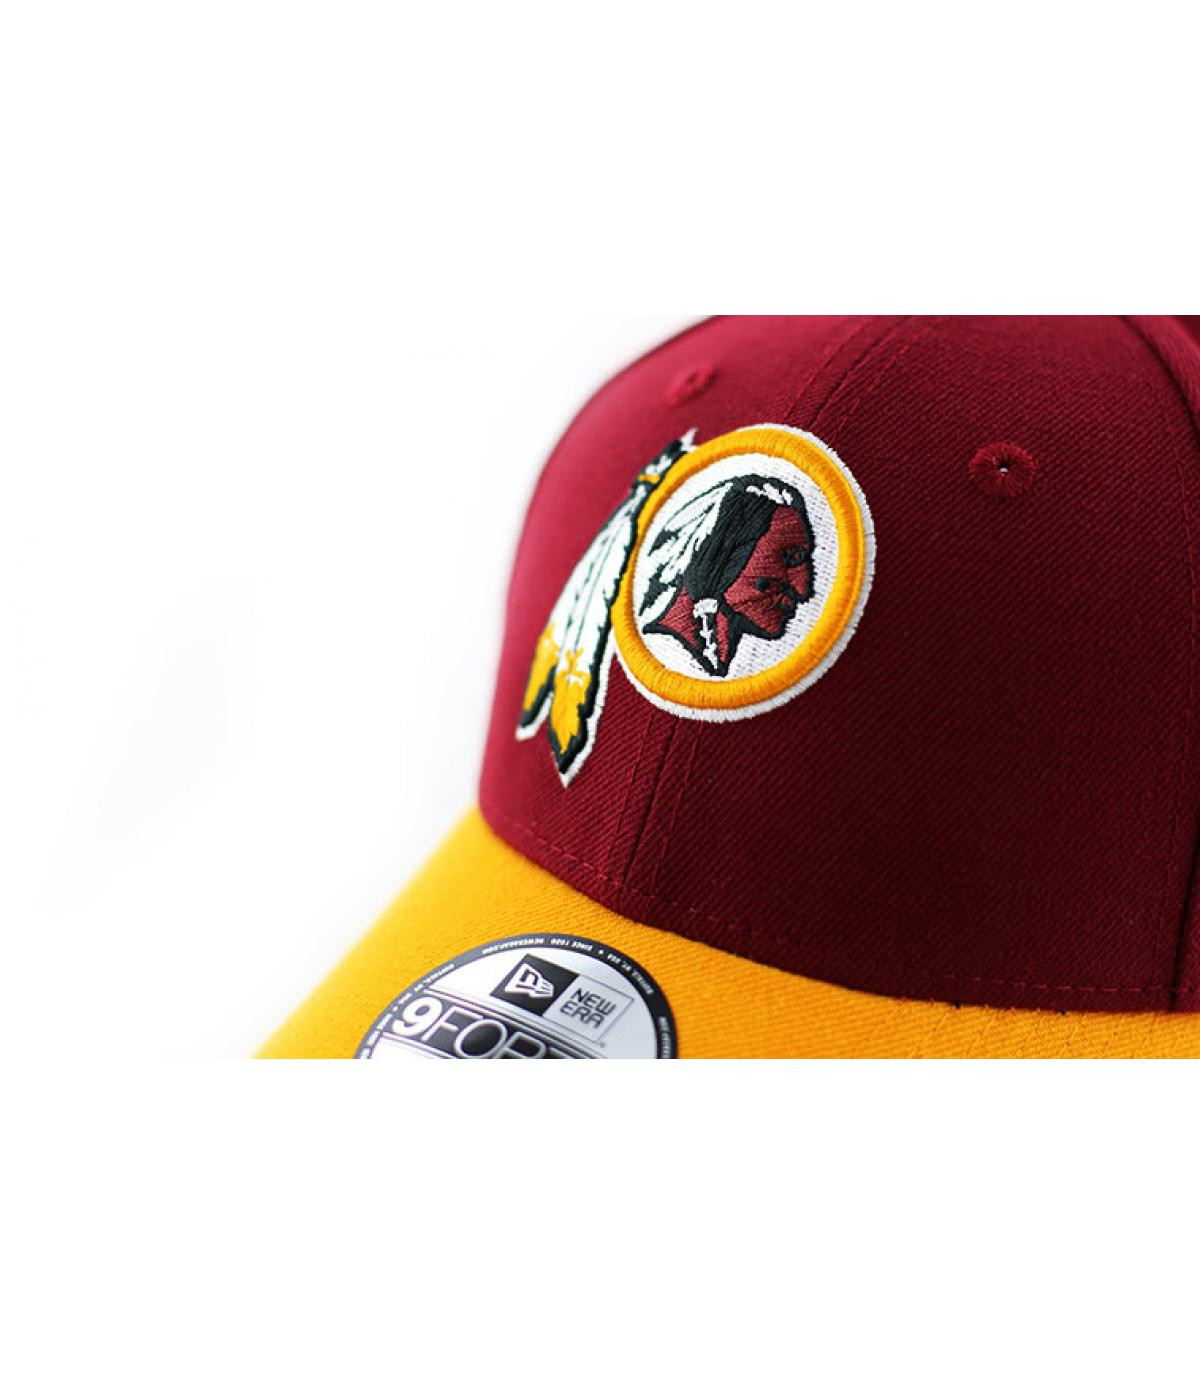 1ec73cd3 yellow and red Redskins curve cap - NFL The League Redskins Team by ...